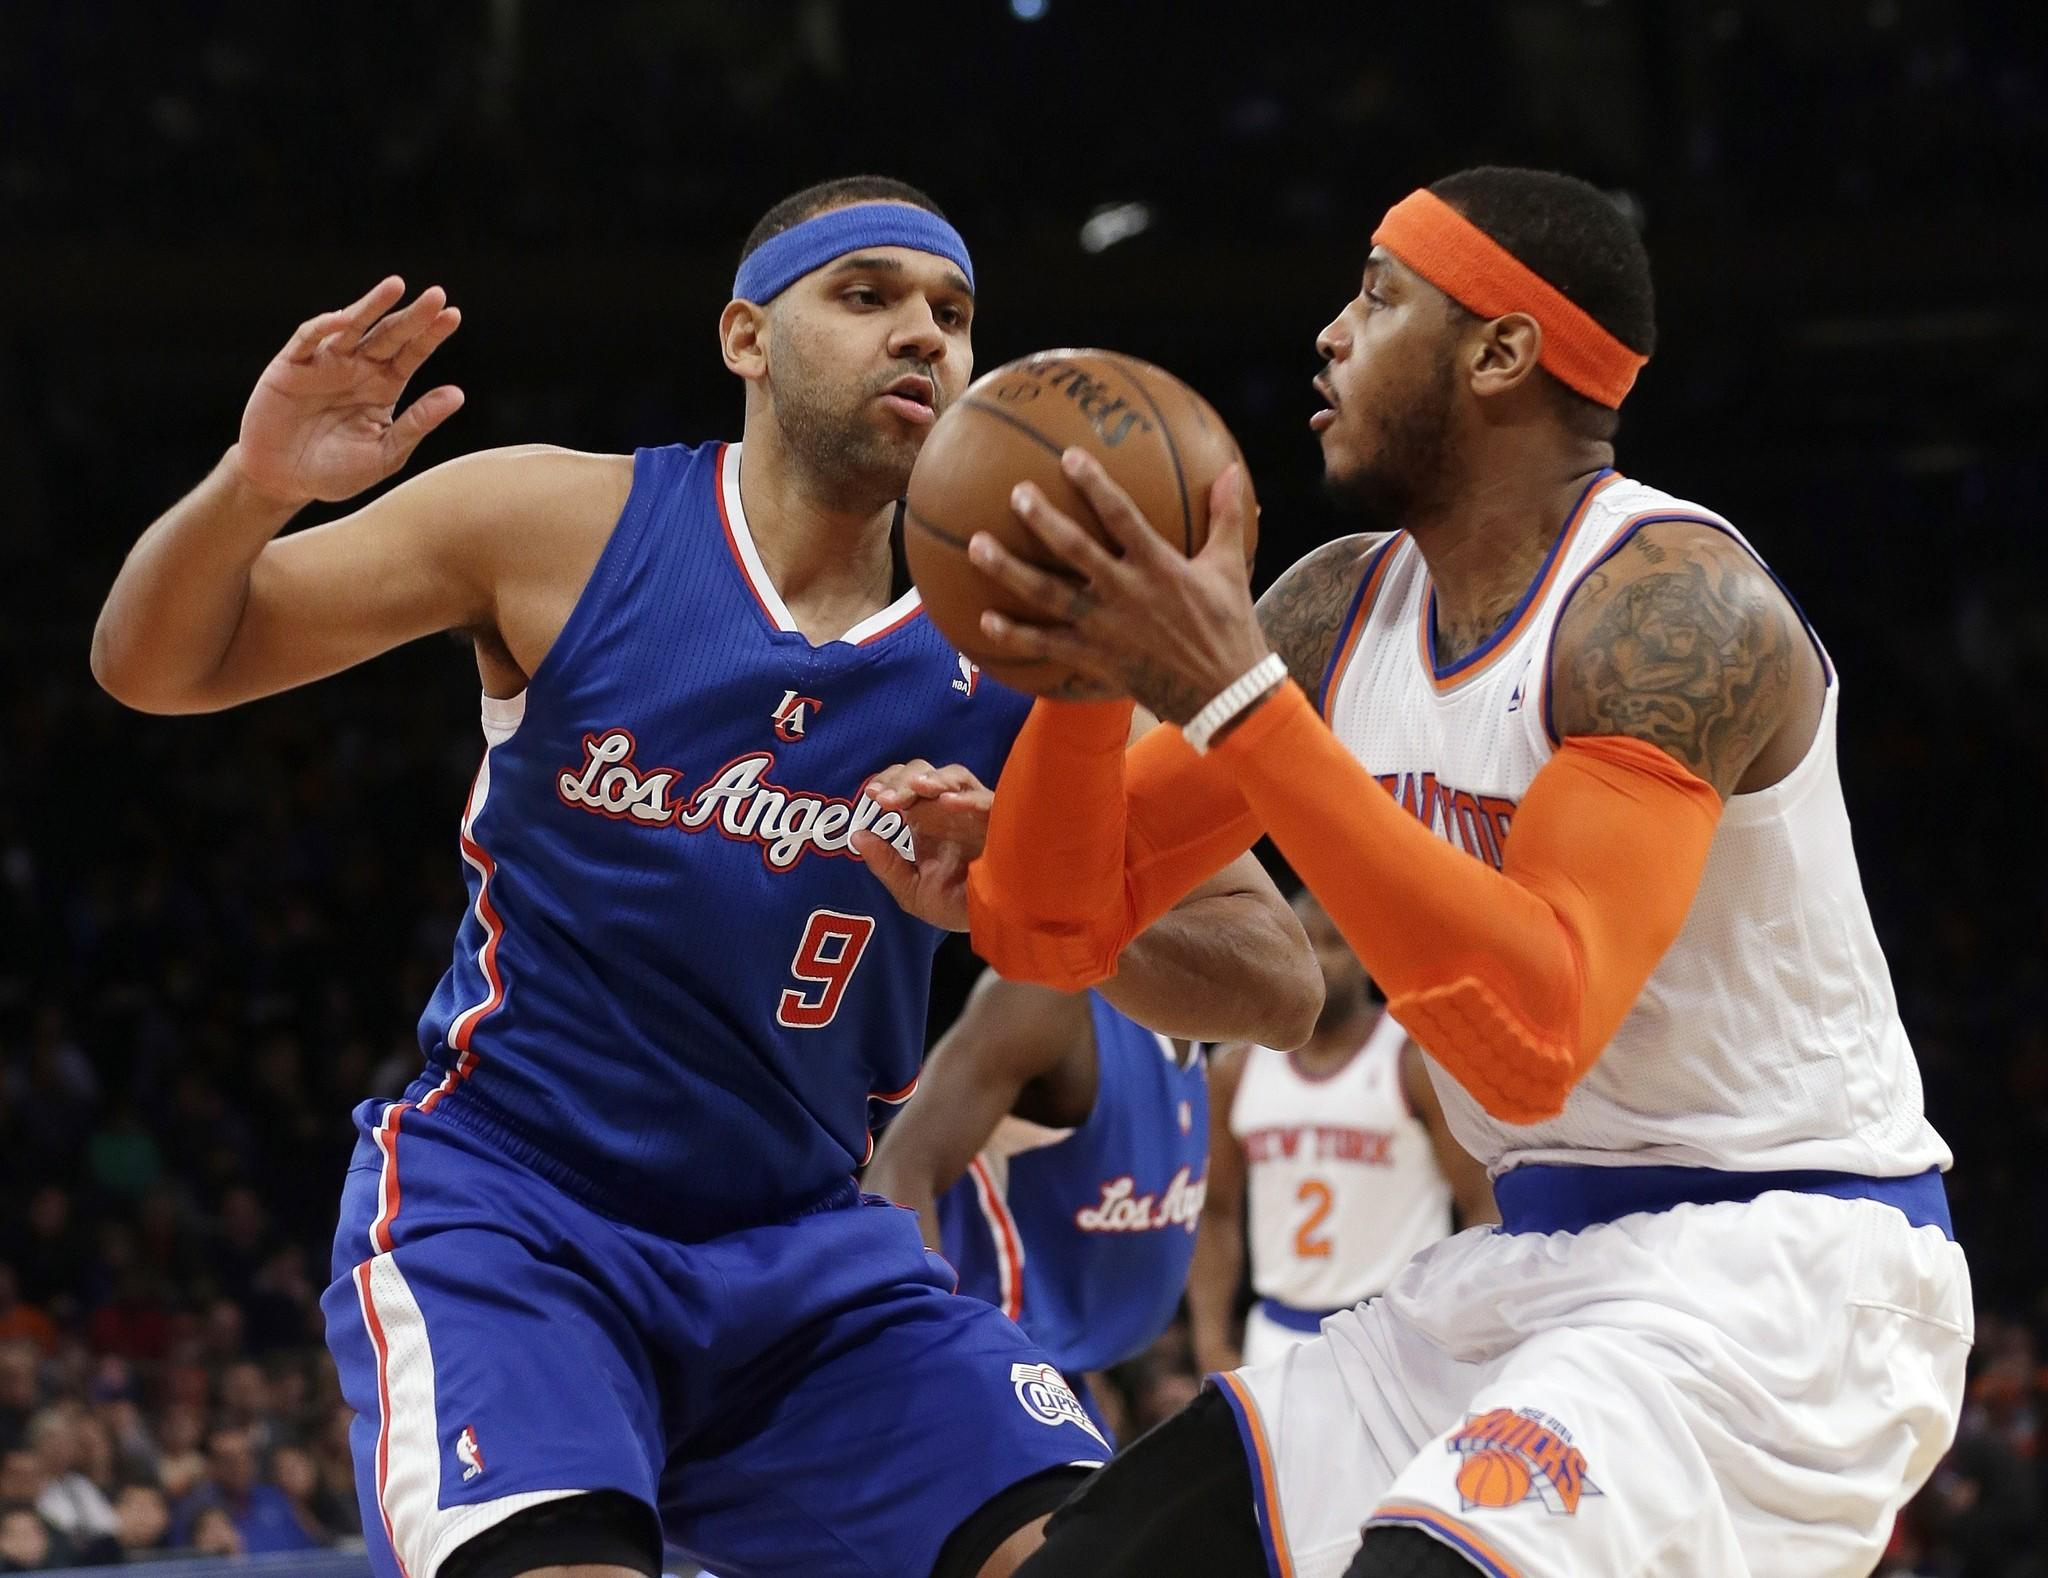 Jared Dudley guards New York's Carmelo Anthony during the first half of the Clippers' matchup with the Knicks on Friday at Madison Square Garden.